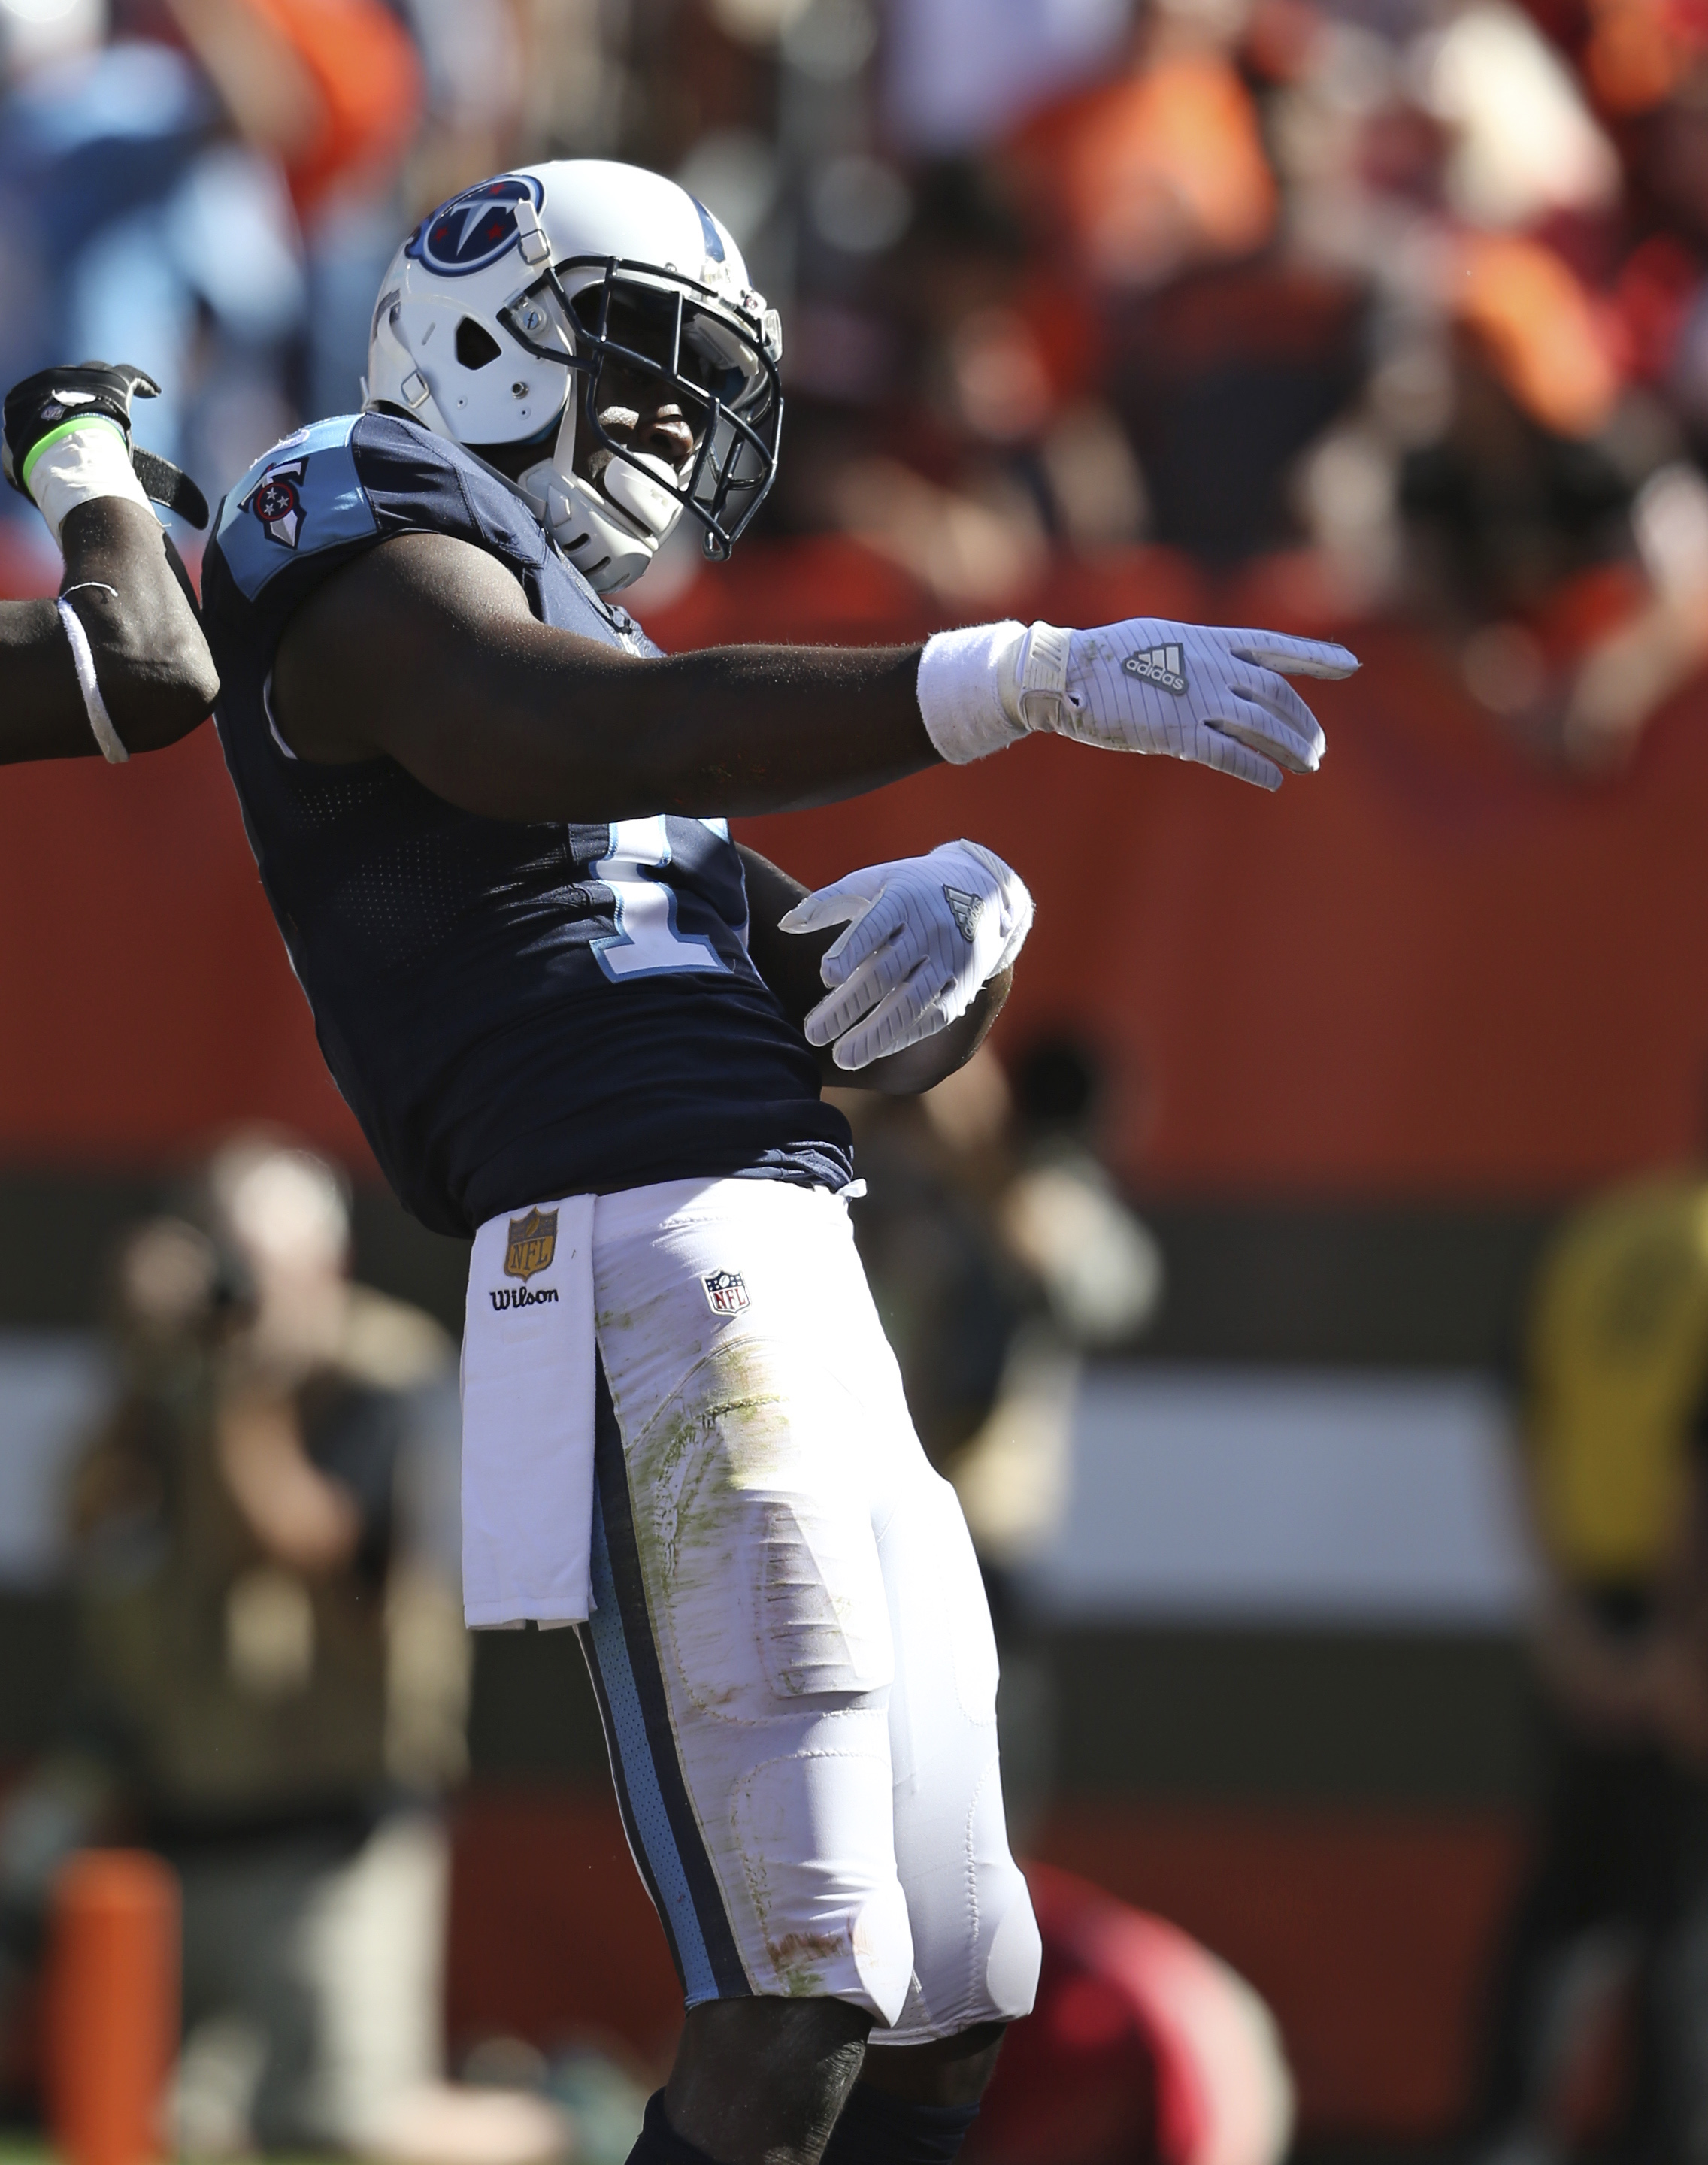 Tennessee Titans wide receiver Dorial Green-Beckham celebrates after a 17-yard touchdown pass in the second half of an NFL football game against the Cleveland Browns, Sunday, Sept. 20, 2015, in Cleveland. (AP Photo/Ron Schwane)